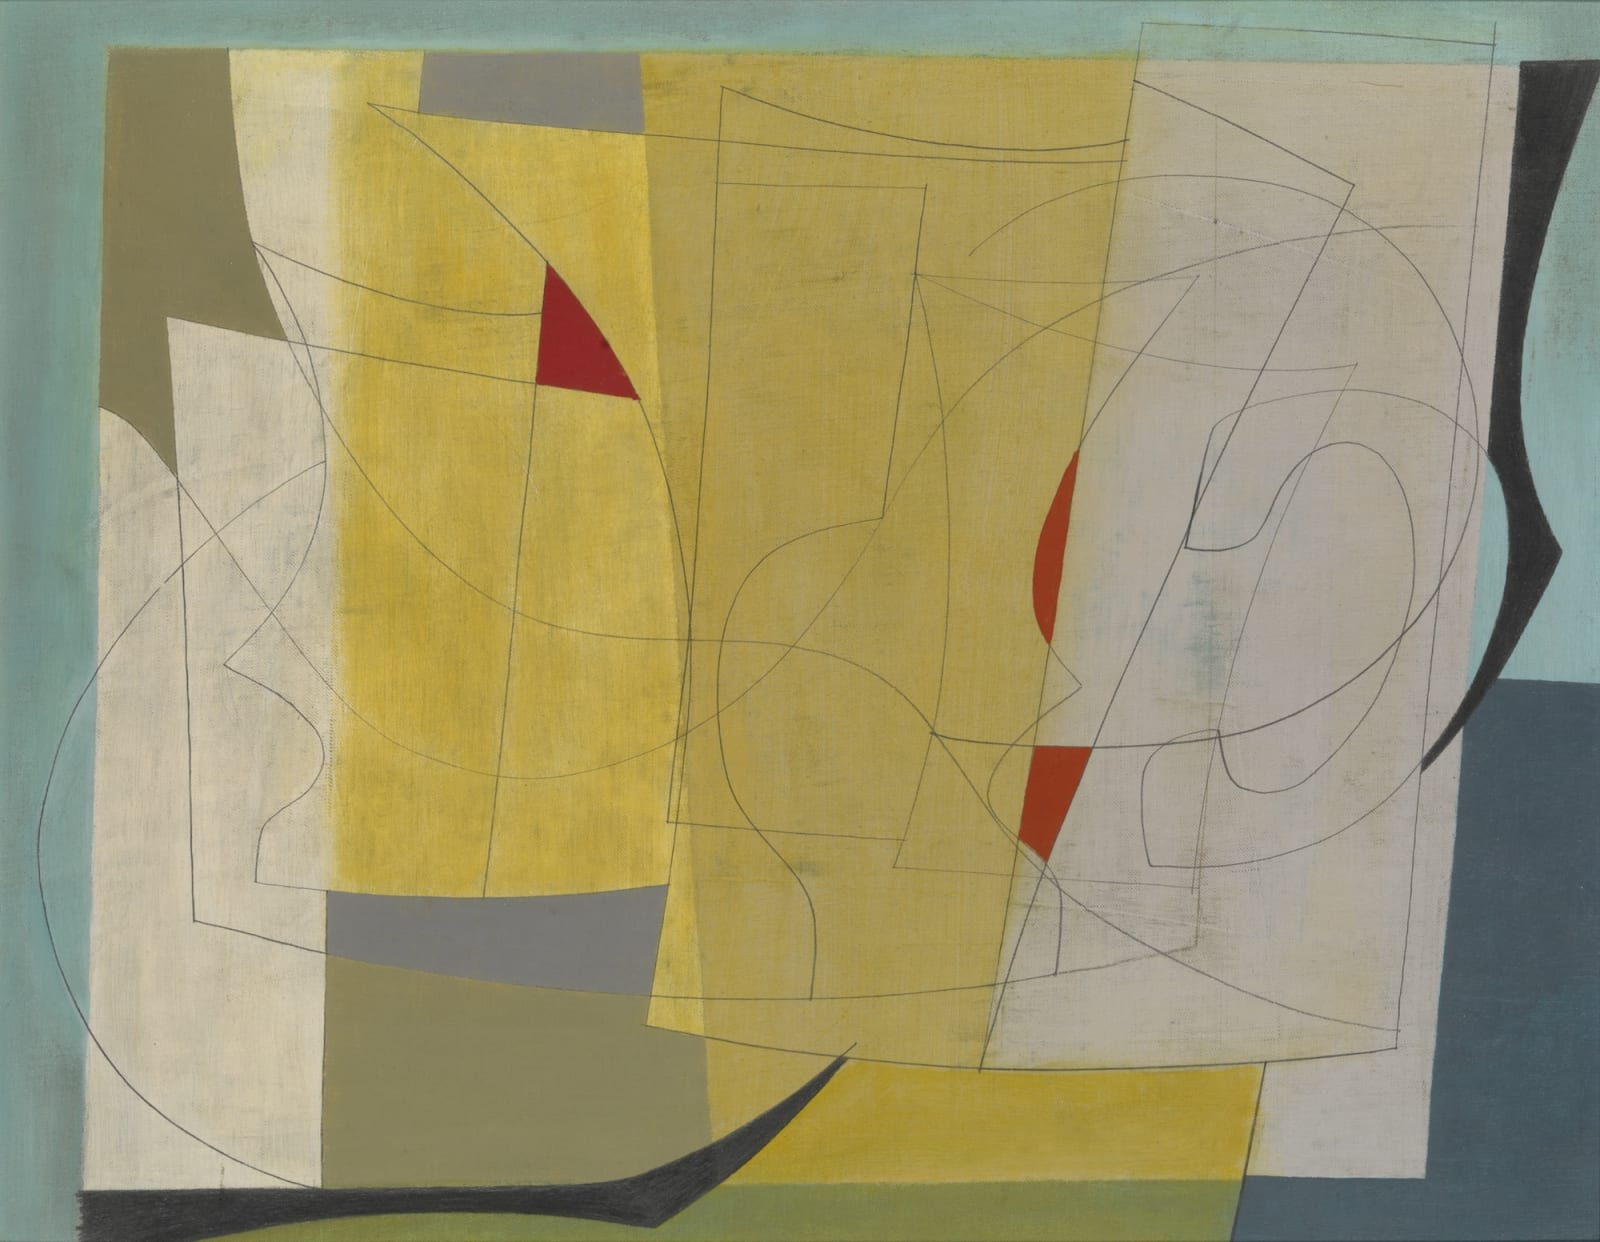 Ben NICHOLSON (1894 – 1982) February 26th 1952 (Lime Green), 1952 Oil and pencil on canvas 13 ¼ x 17 1/8 inches / 33.5 x 43.5 cm